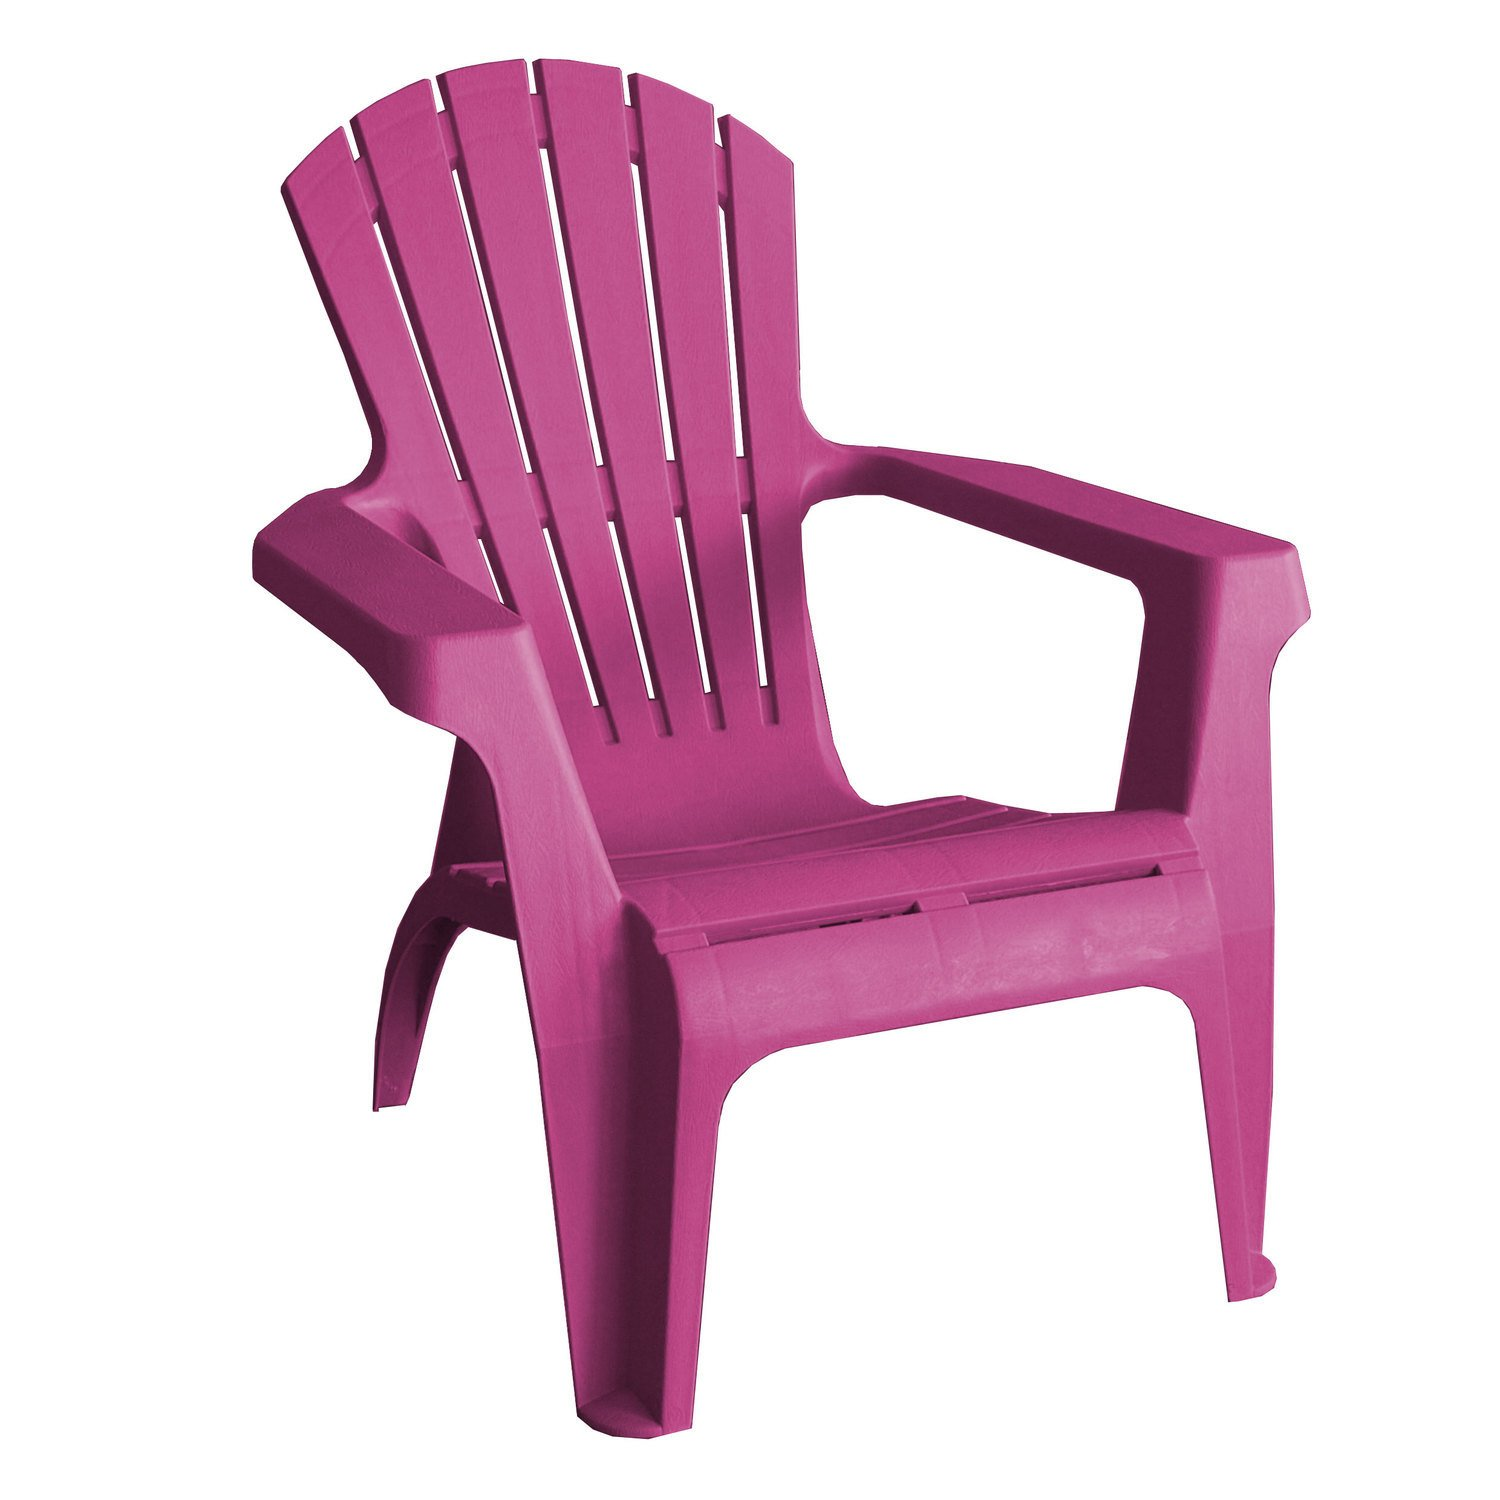 adirondack chair stapelstuhl gartenstuhl kunststoff pink. Black Bedroom Furniture Sets. Home Design Ideas